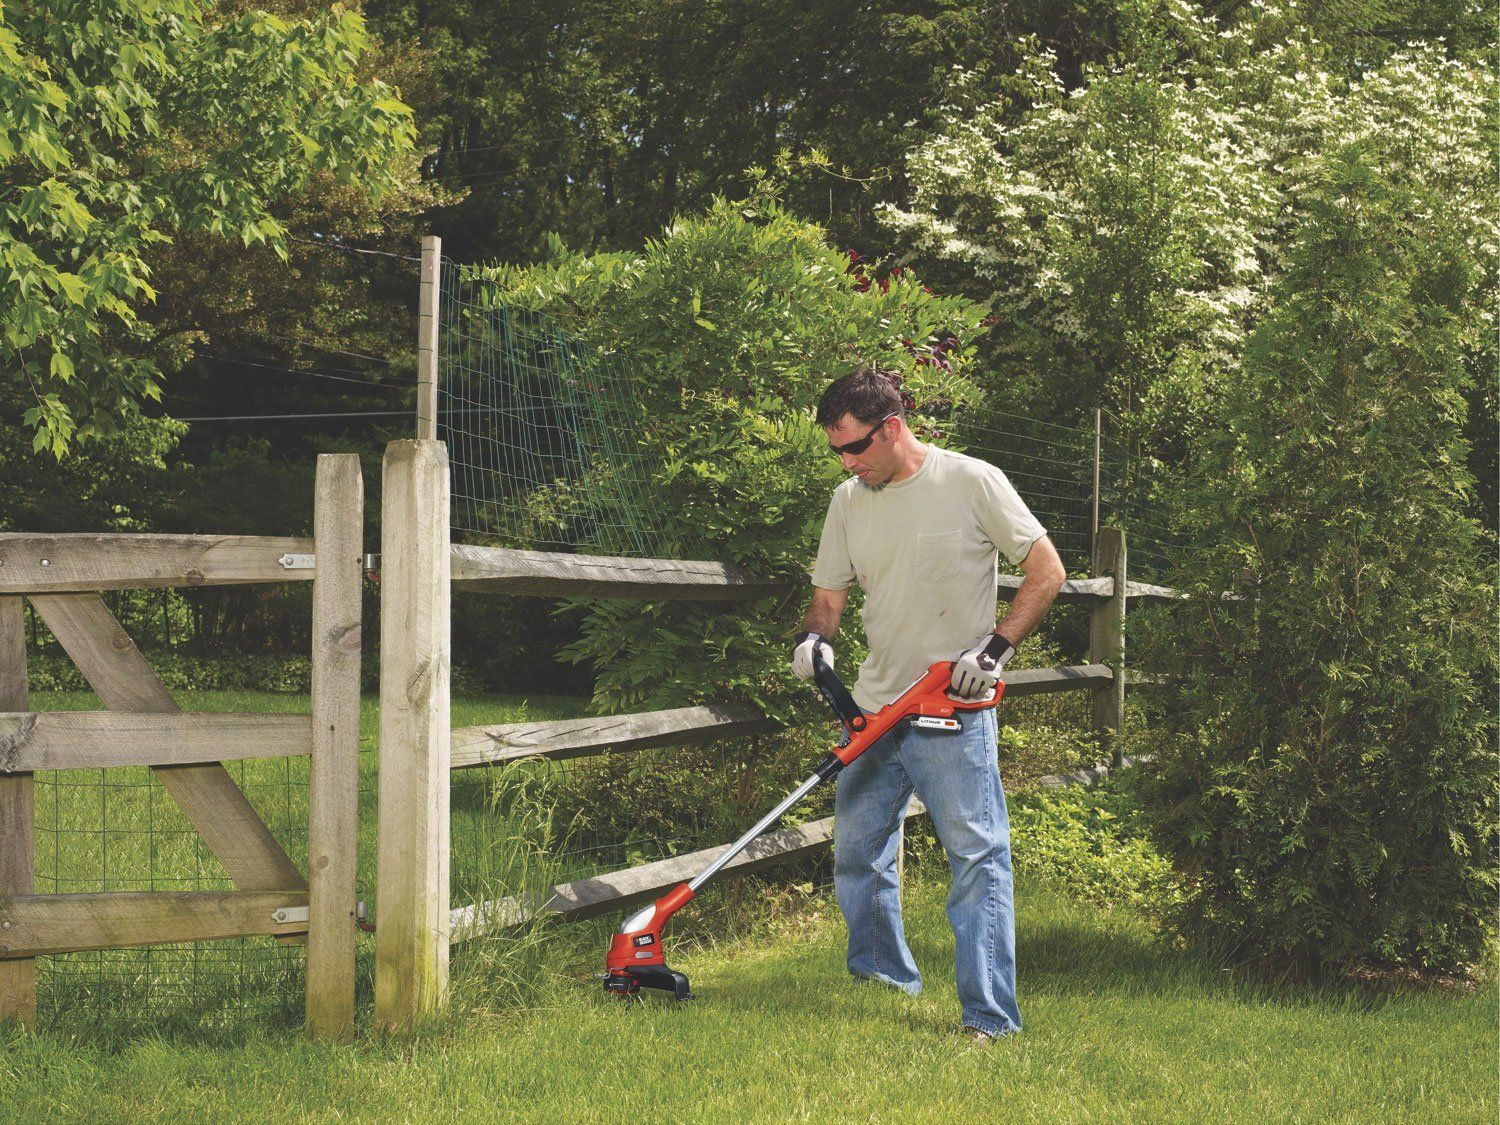 Pin On Black Decker Weed Trimmers